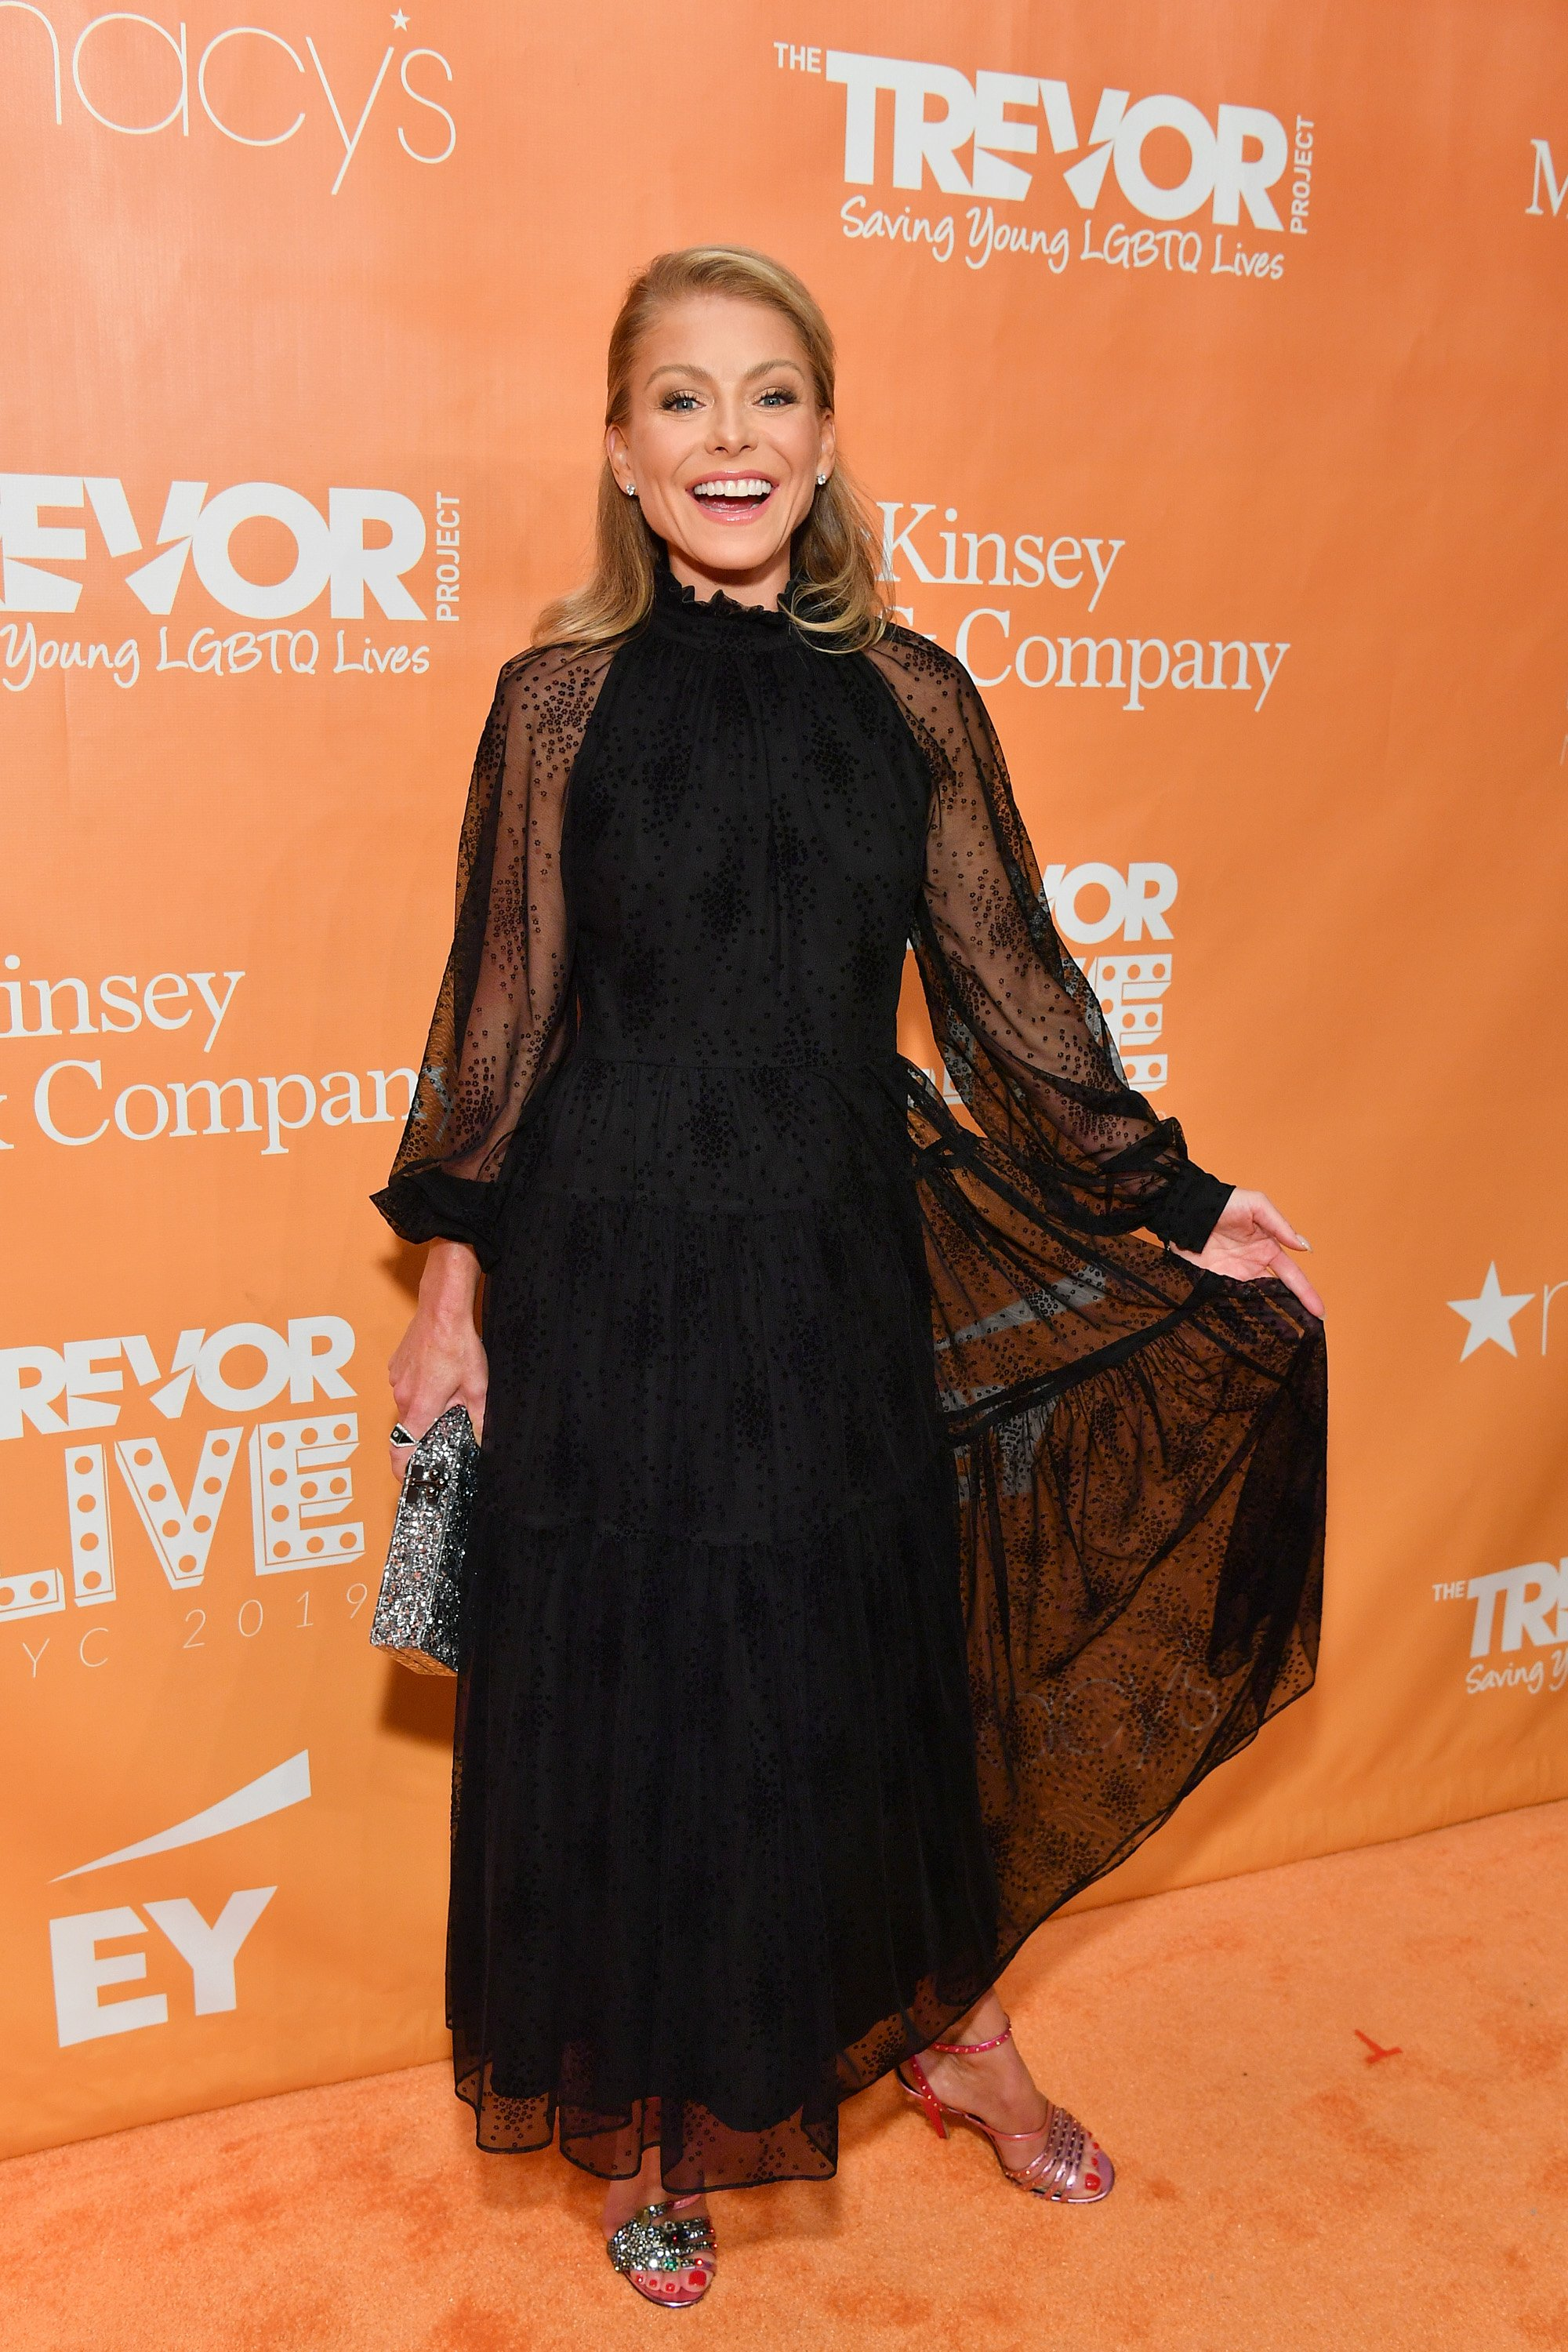 Kelly Ripa attends the 2019 TrevorLIVE New York Gala in New York City on June 17, 2019 | Photo: Getty Images